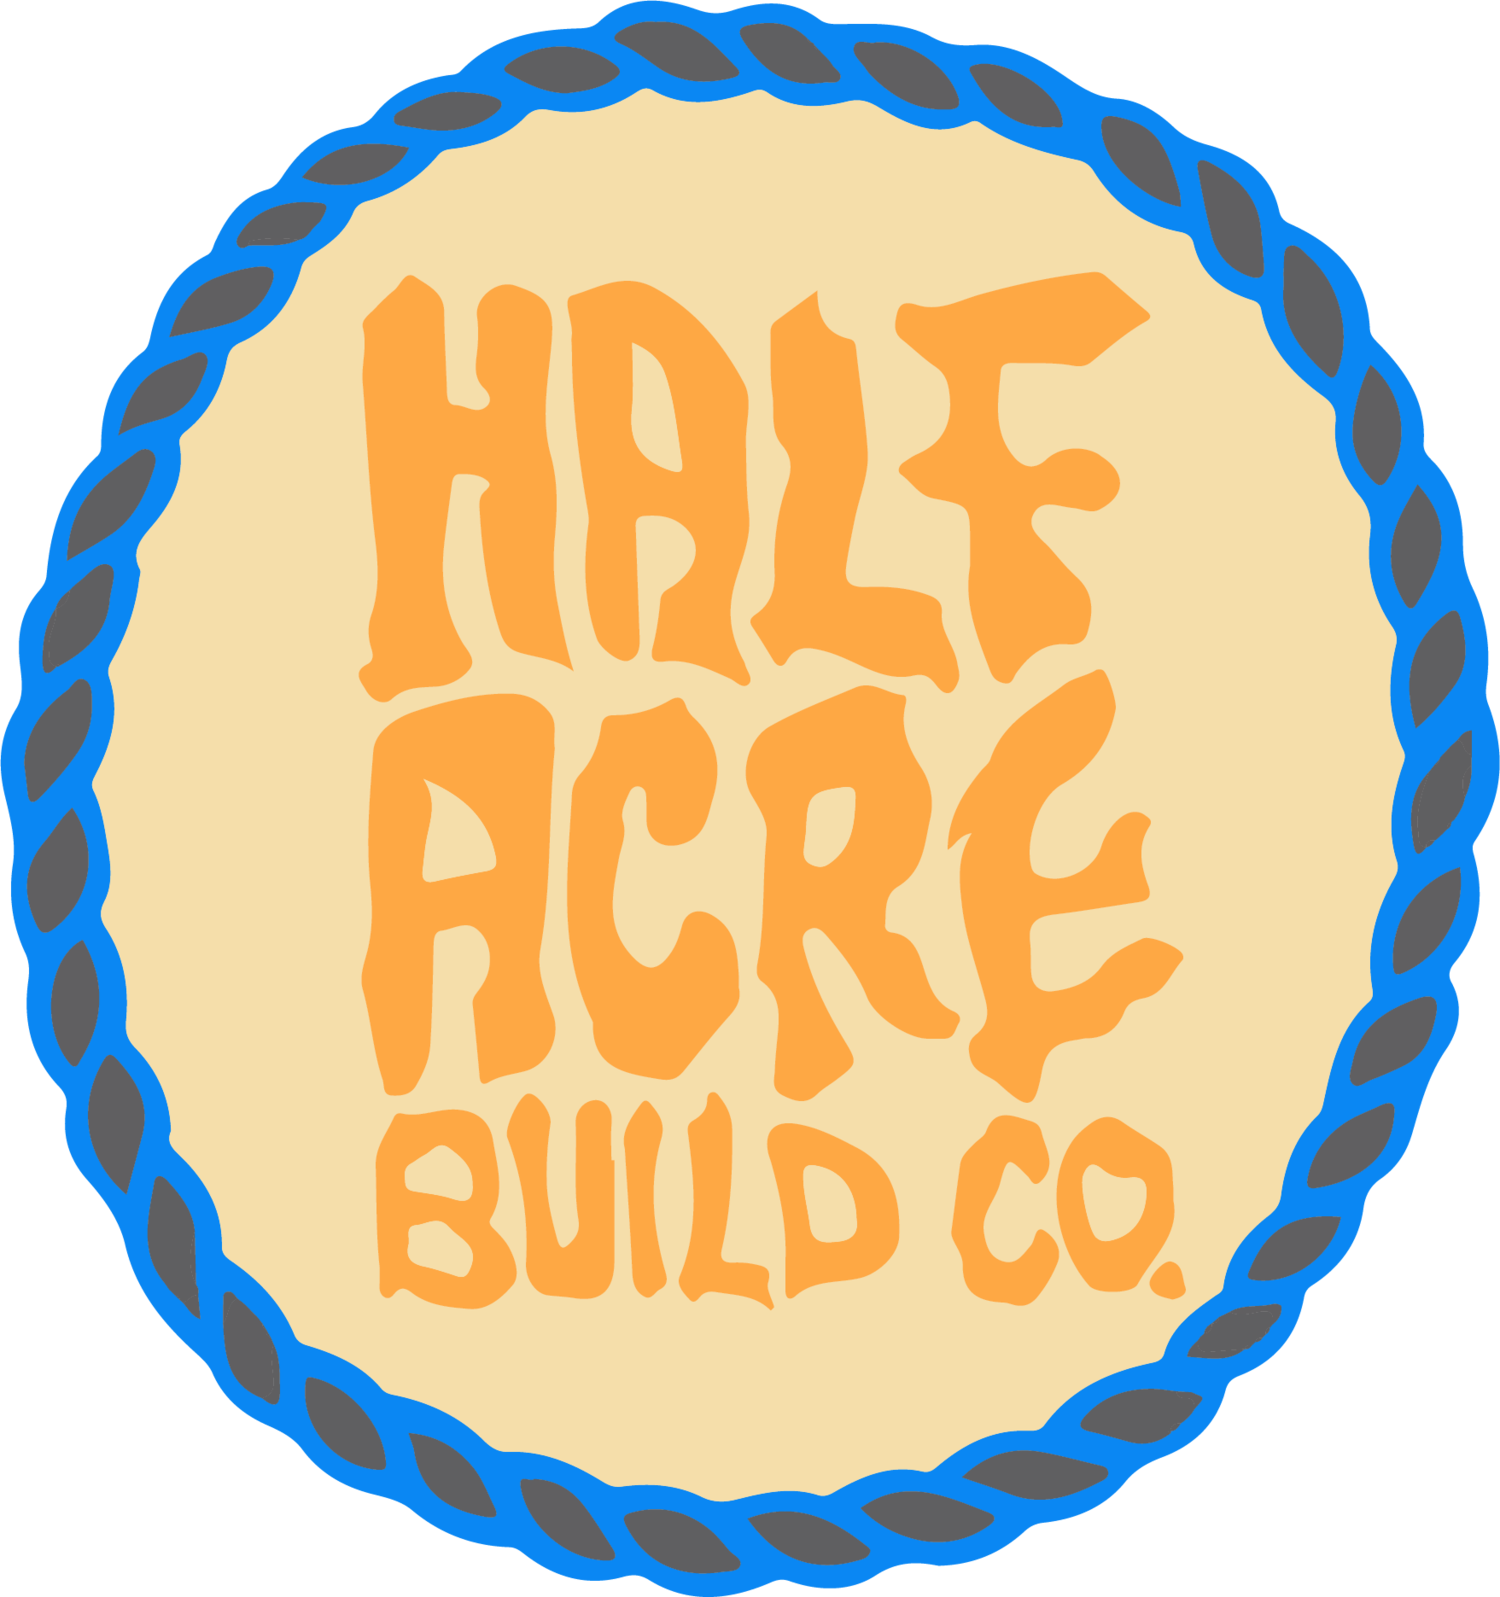 Half Acre Build Co.